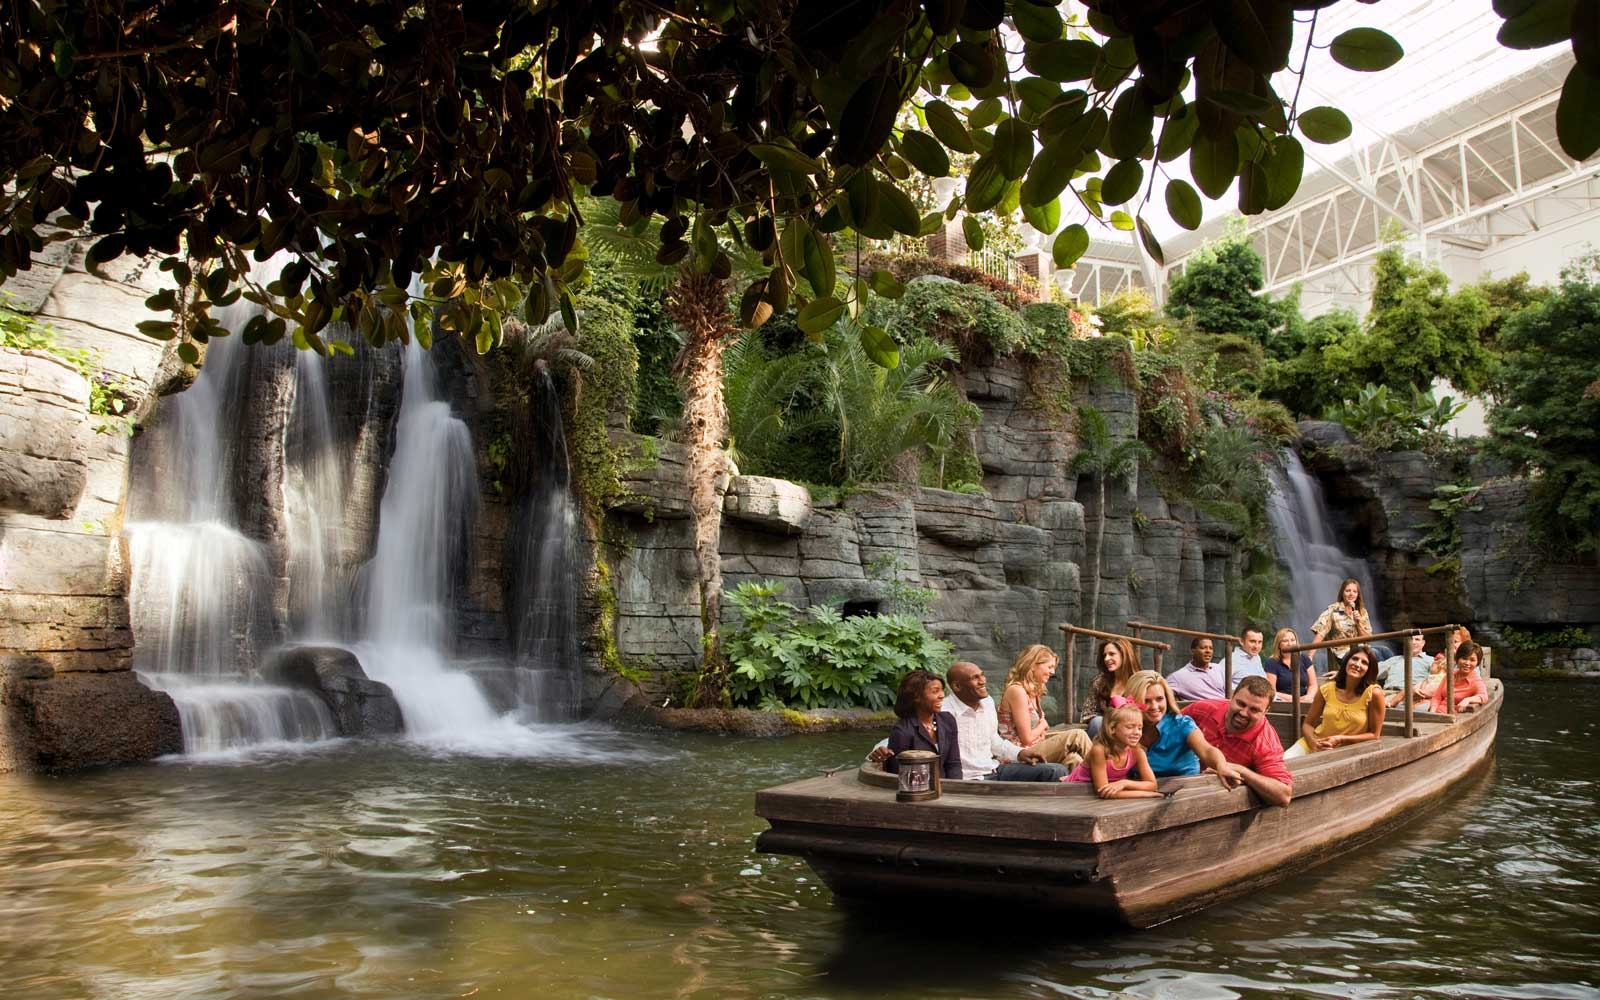 Delta boat ride at the Gaylord Opryland resort